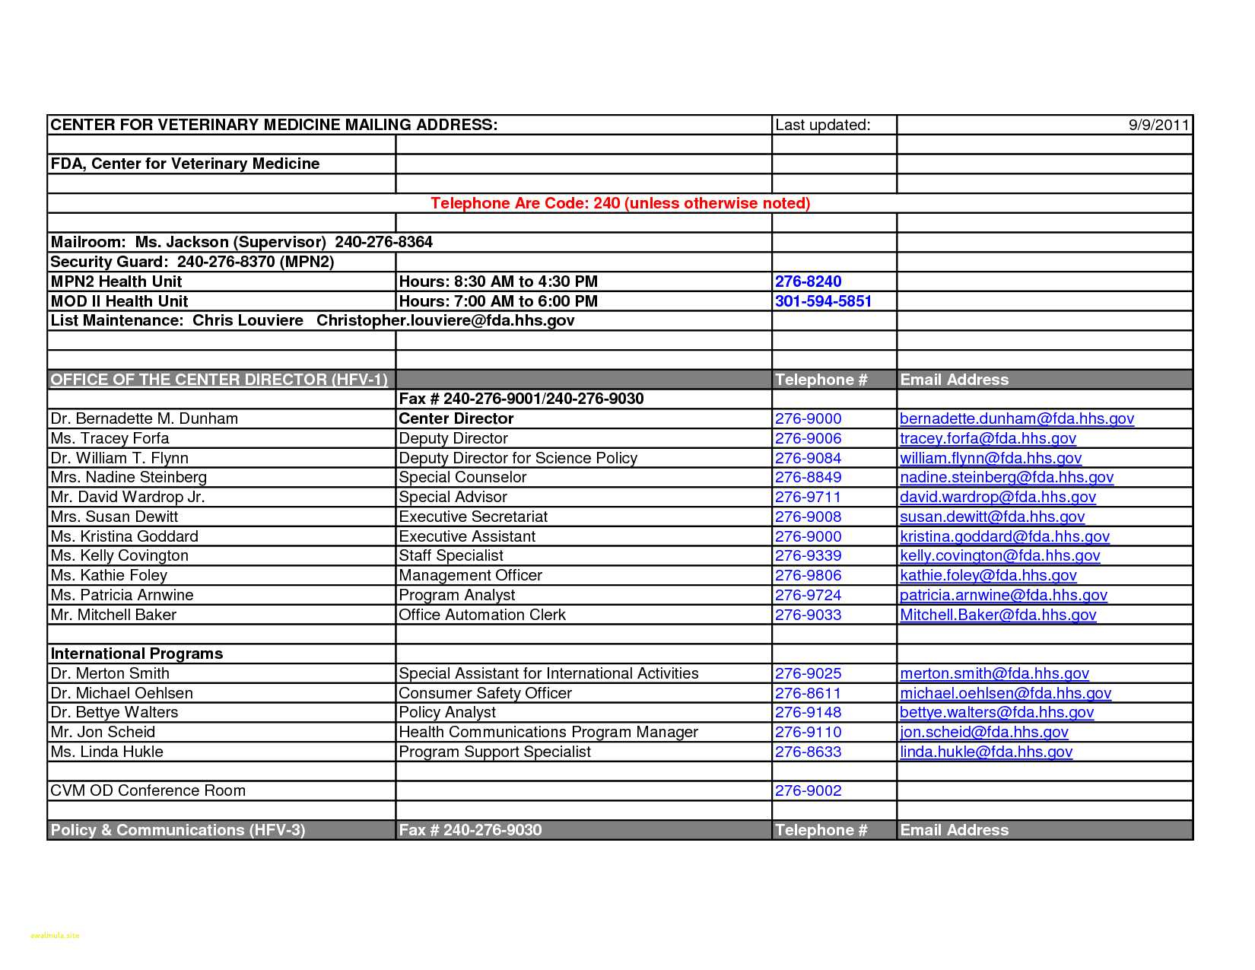 Microsoft Excel Spreadsheet Download Intended For Excel Spreadsheet Examples Download Along With Equipment Inventory